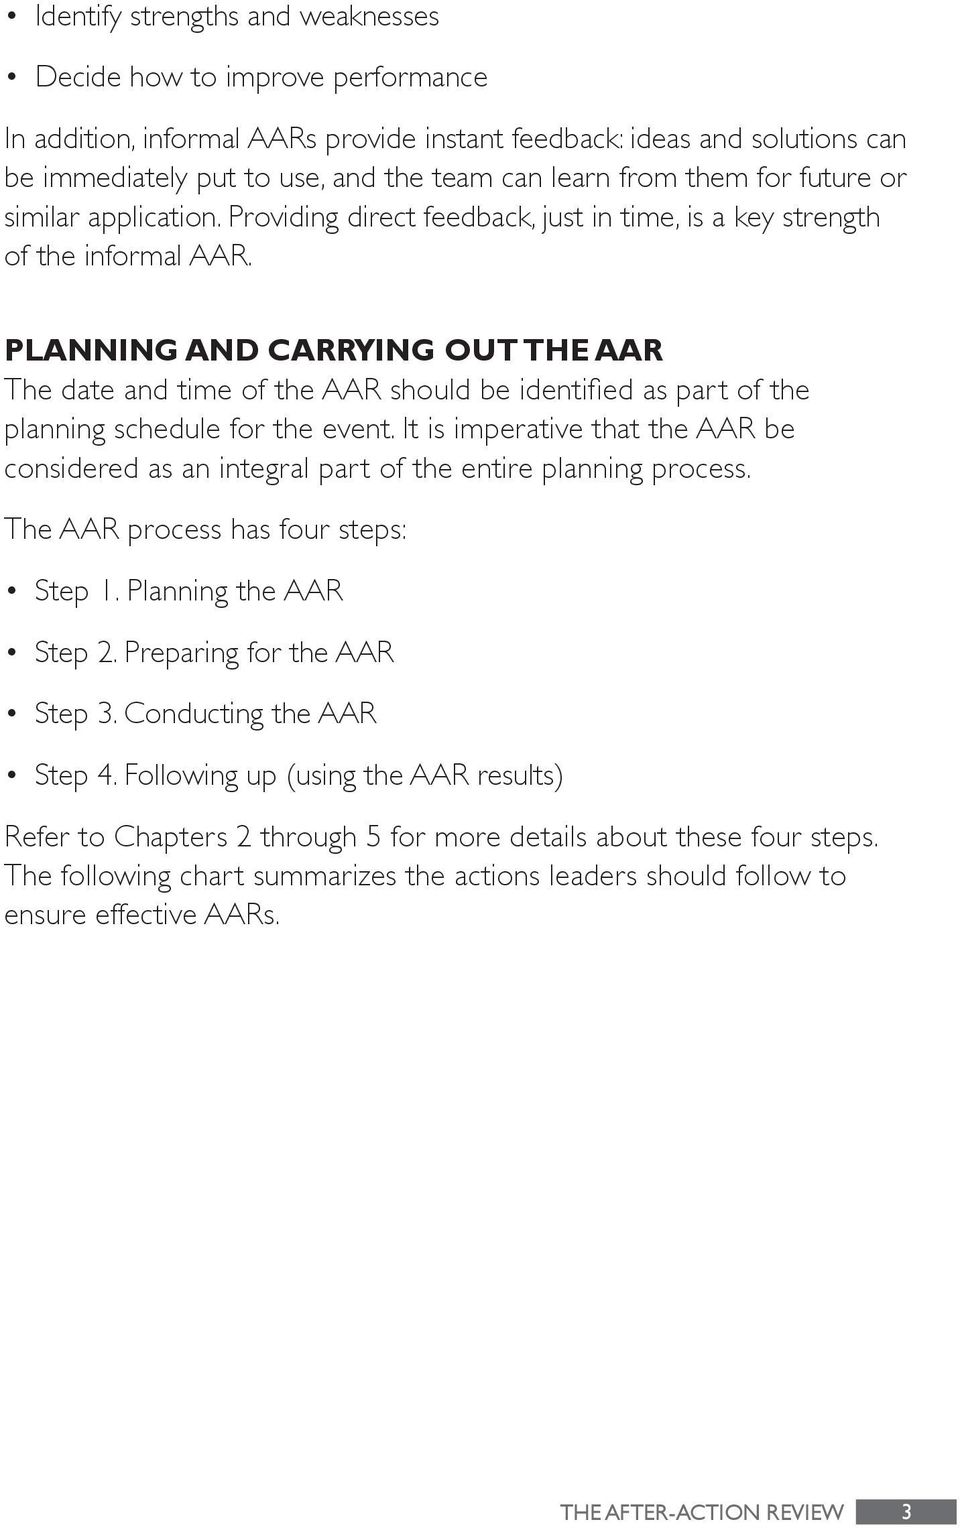 PLANNING AND CARRYING OUT THE AAR The date and time of the AAR should be identified as par t of the planning schedule for the event.